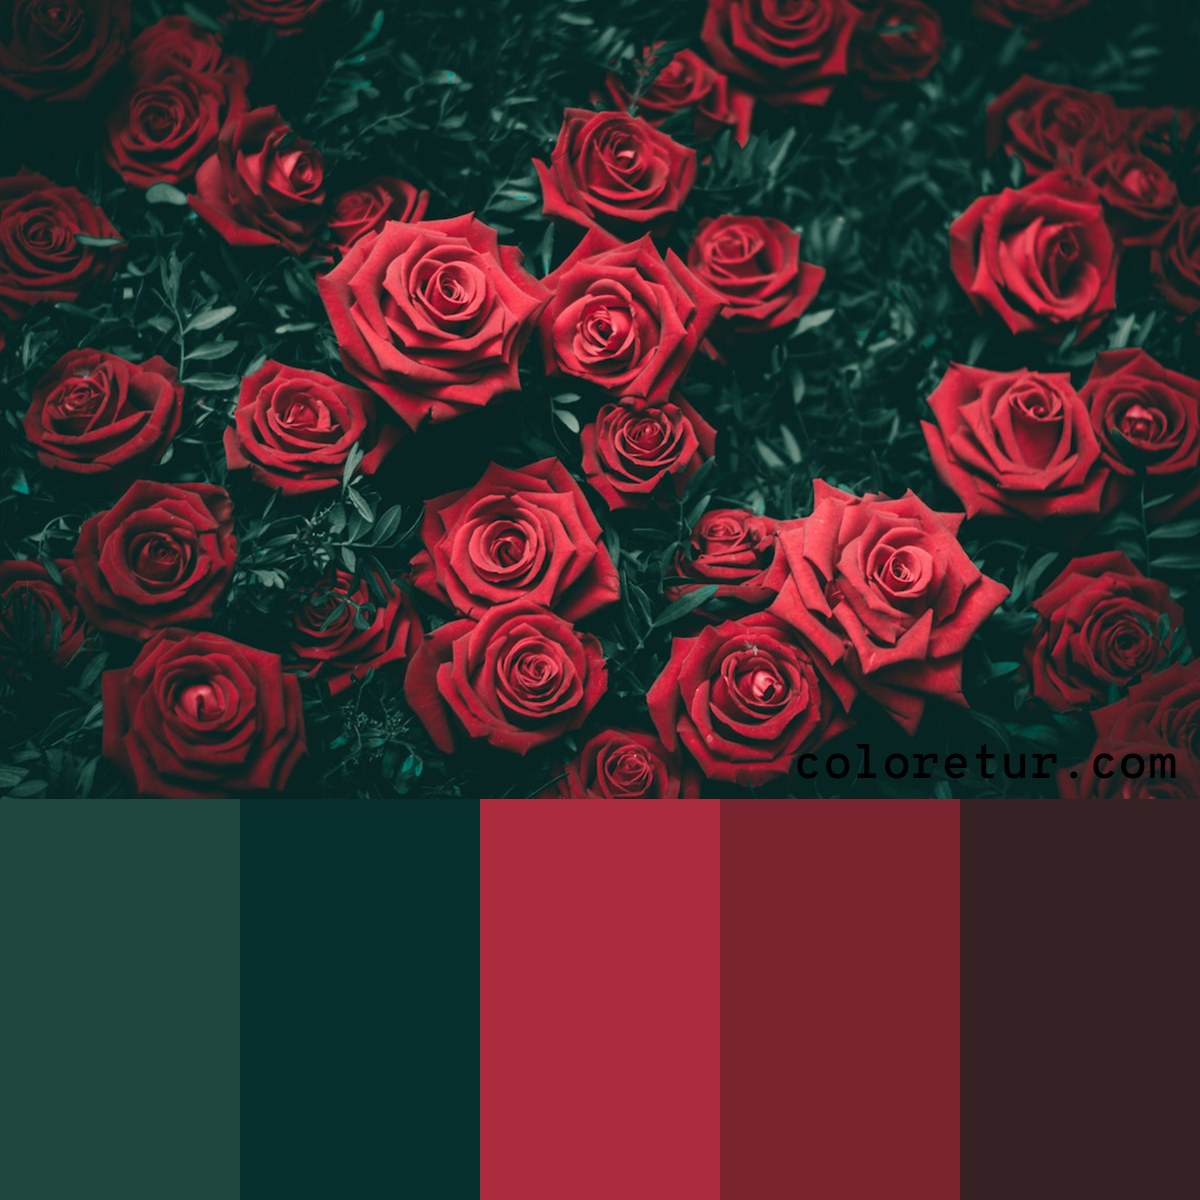 A dark, moody palette from a bouquet of red roses.